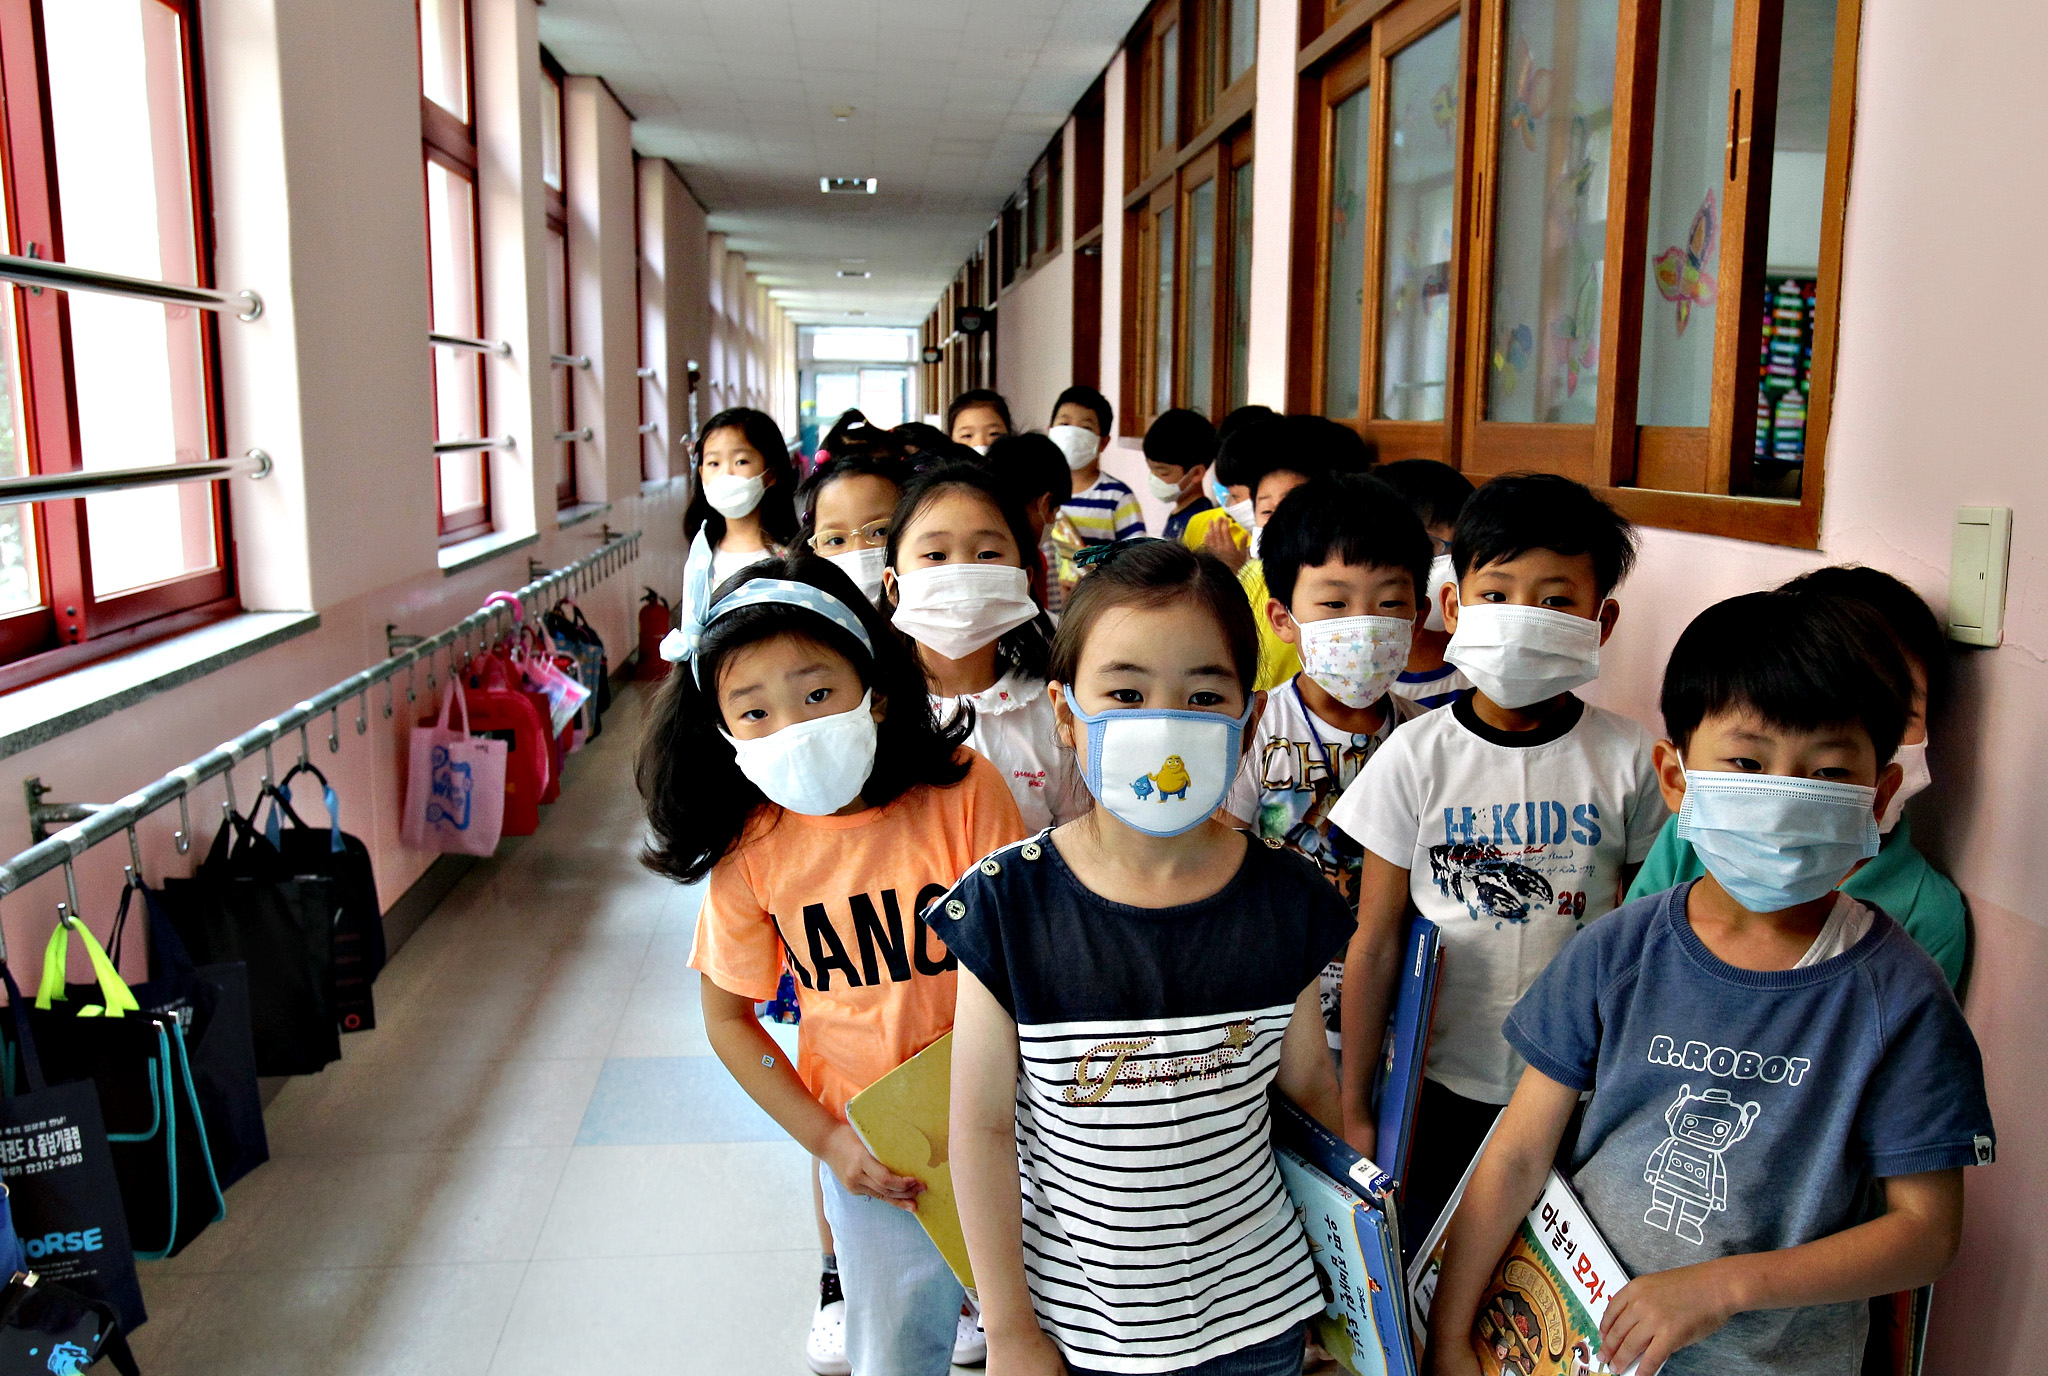 Elementary school students wear masks as a precaution against the MERS virus as they wait for a lesson to start at Midong Elementary School on June 9, 2015 in Seoul, South Korea. South Korea has reported eight deaths related to the virus with 2,500 people quarantined and 1,800 schools closed as of June 9, 2015